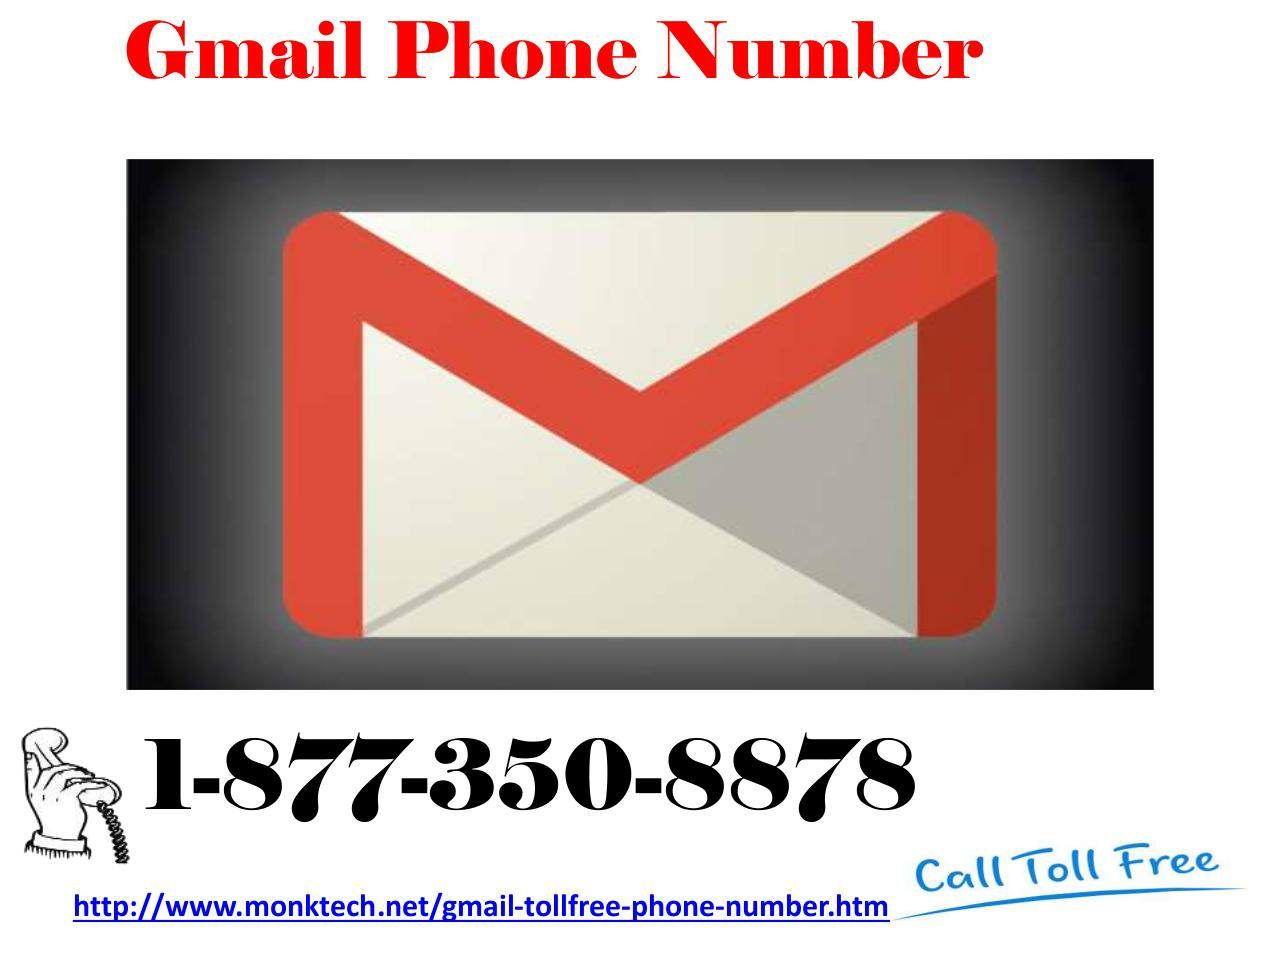 How to set up an account to pop account call at gmail